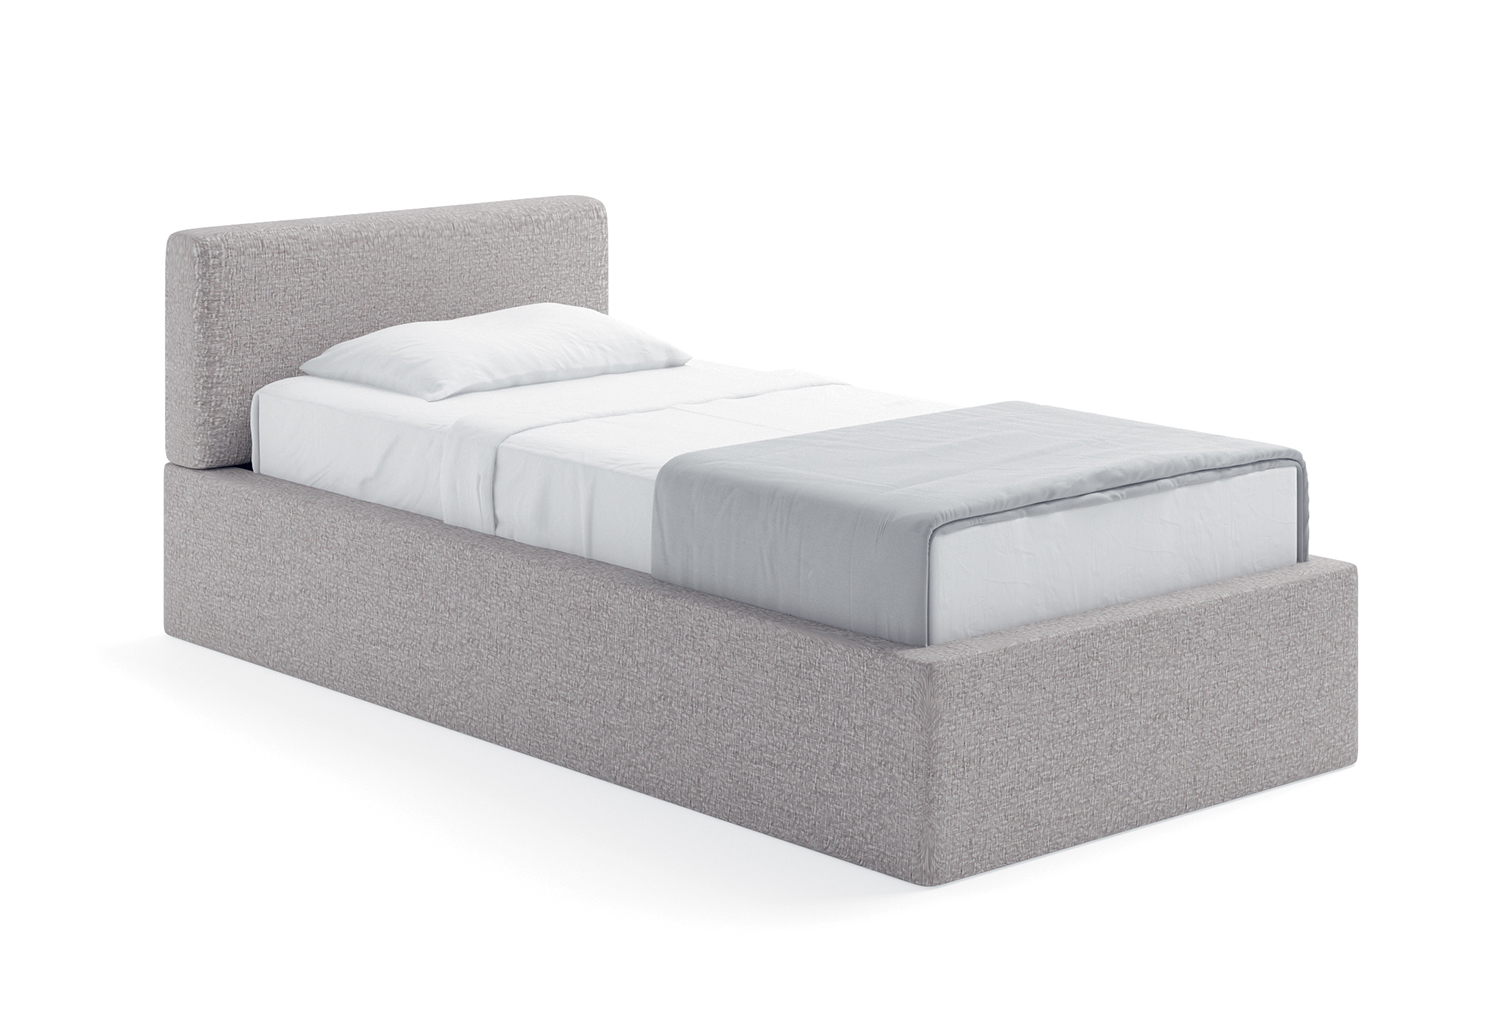 Quadro single bed with storage box - CLEVER.IT